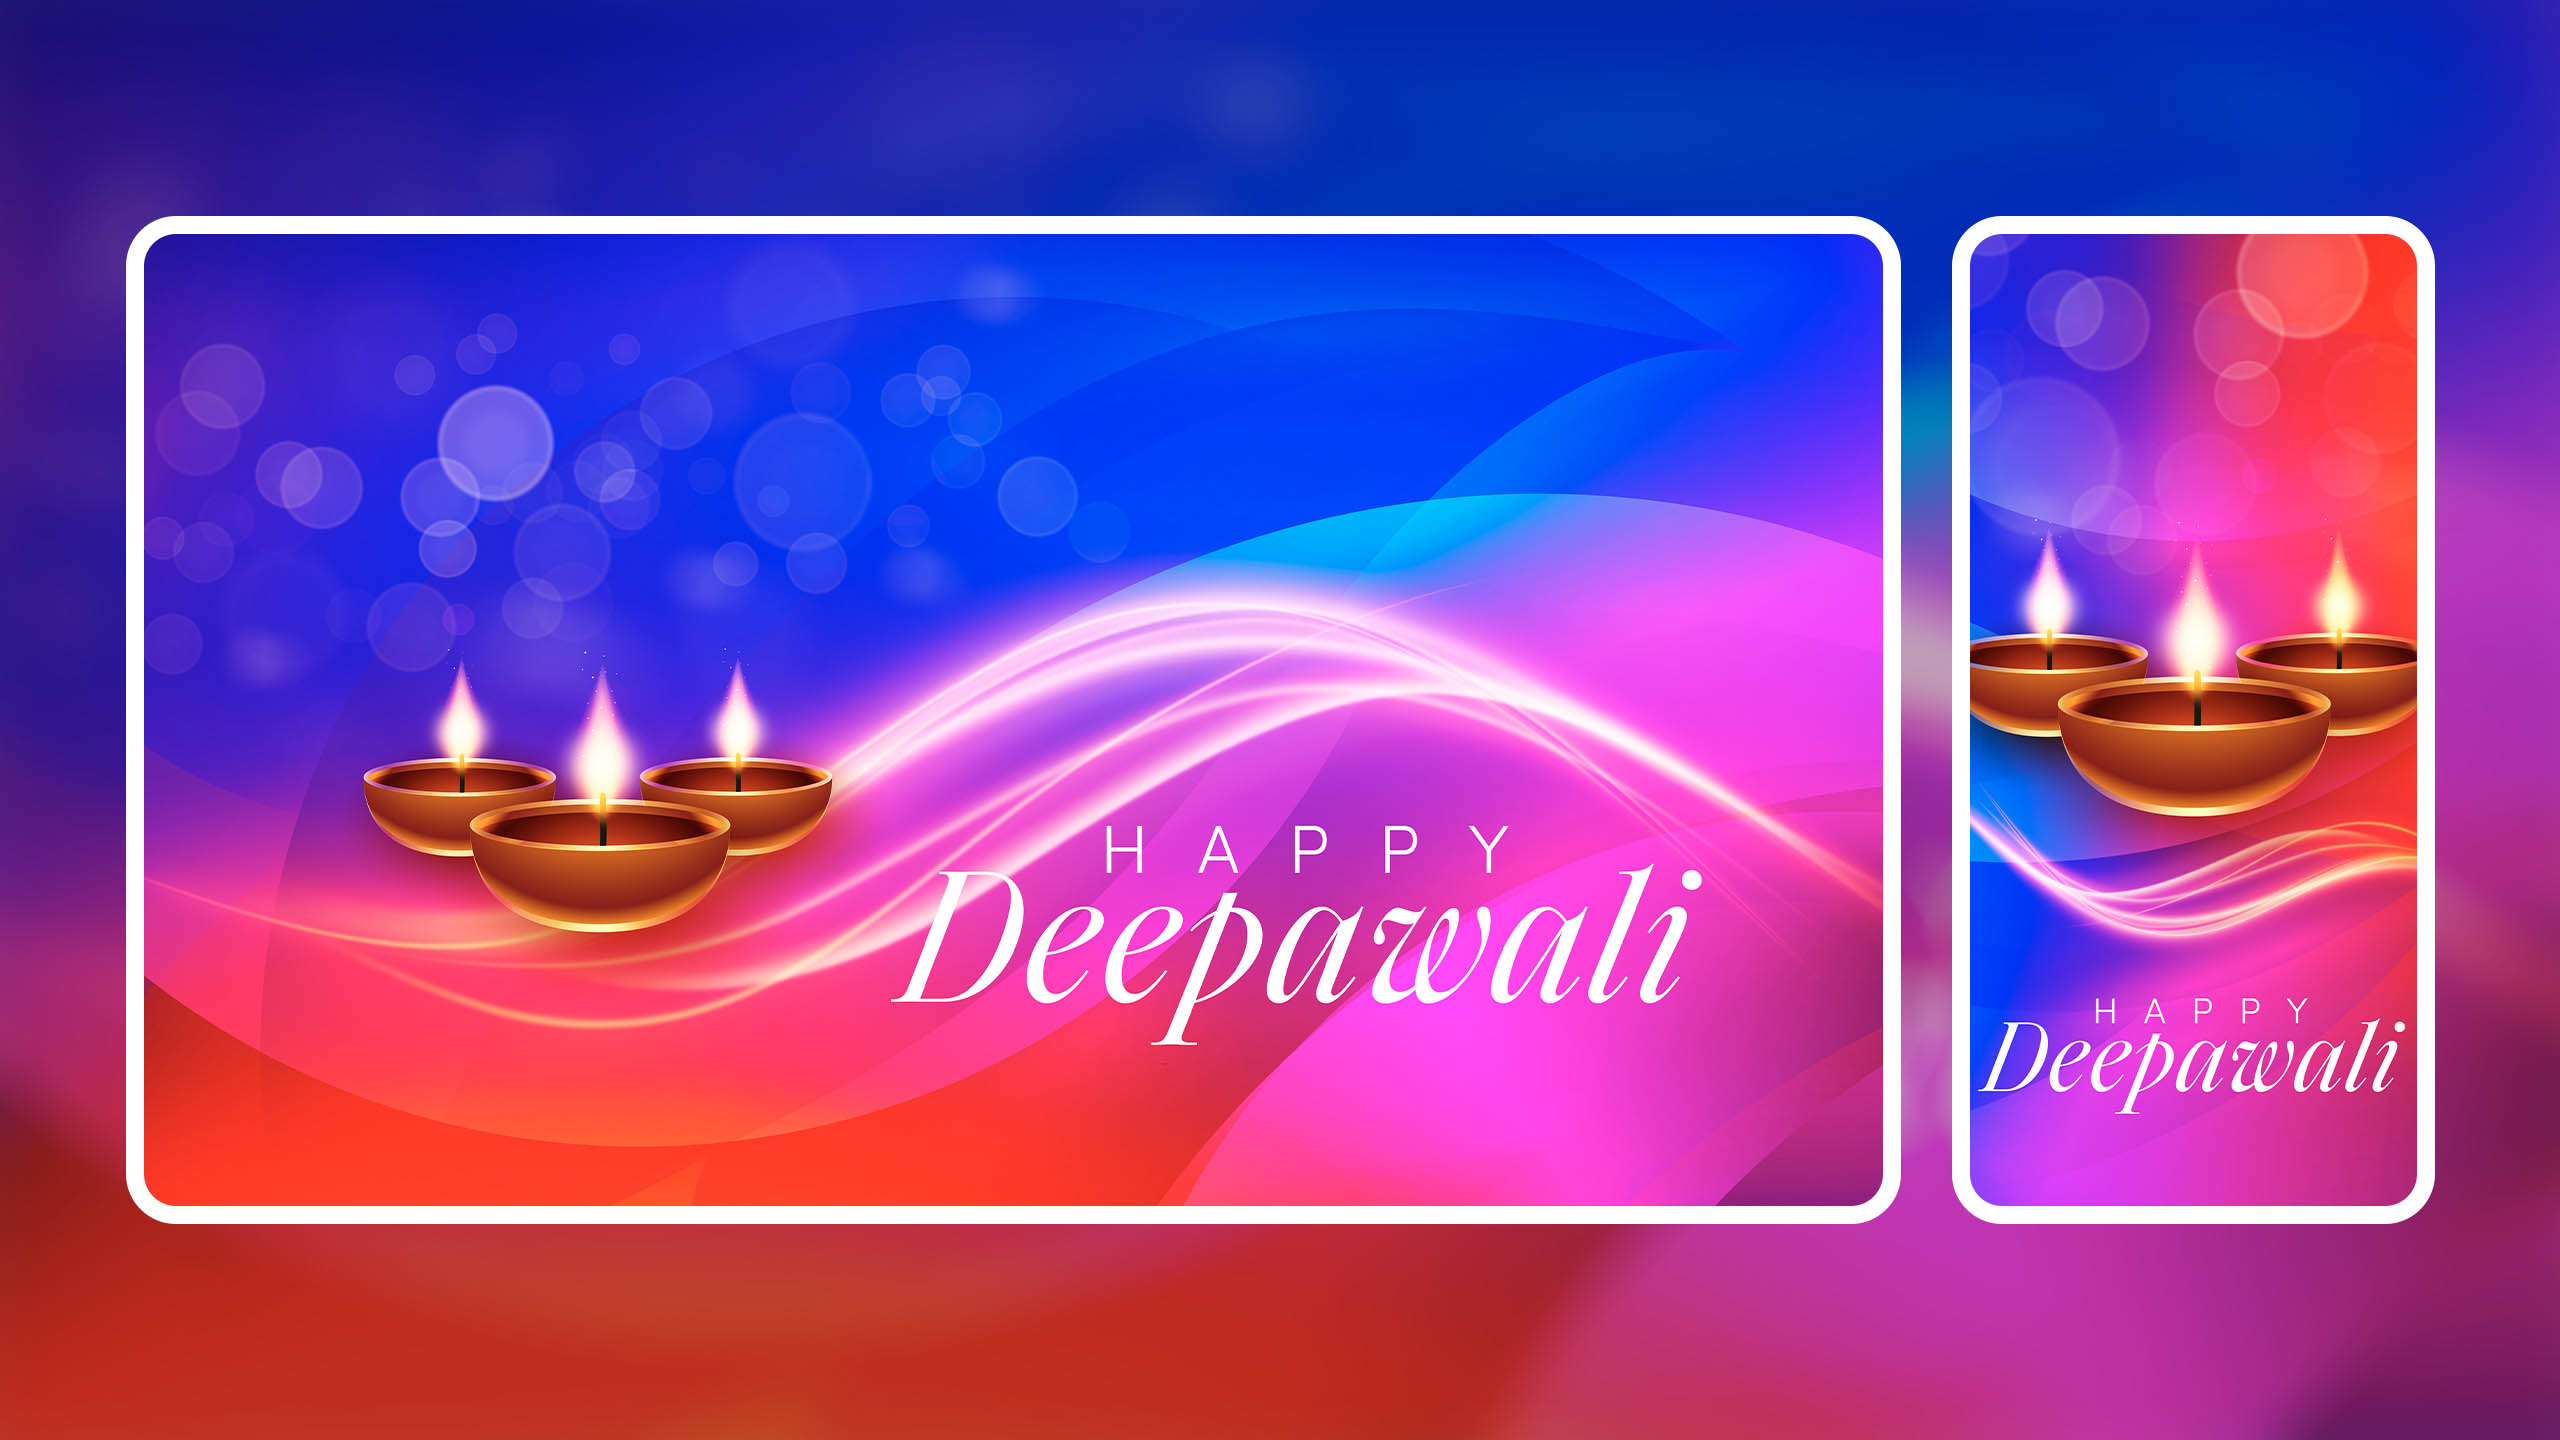 Happy Deepawali Wallpaper for iPhone, Desktop & Wishes, Quotes